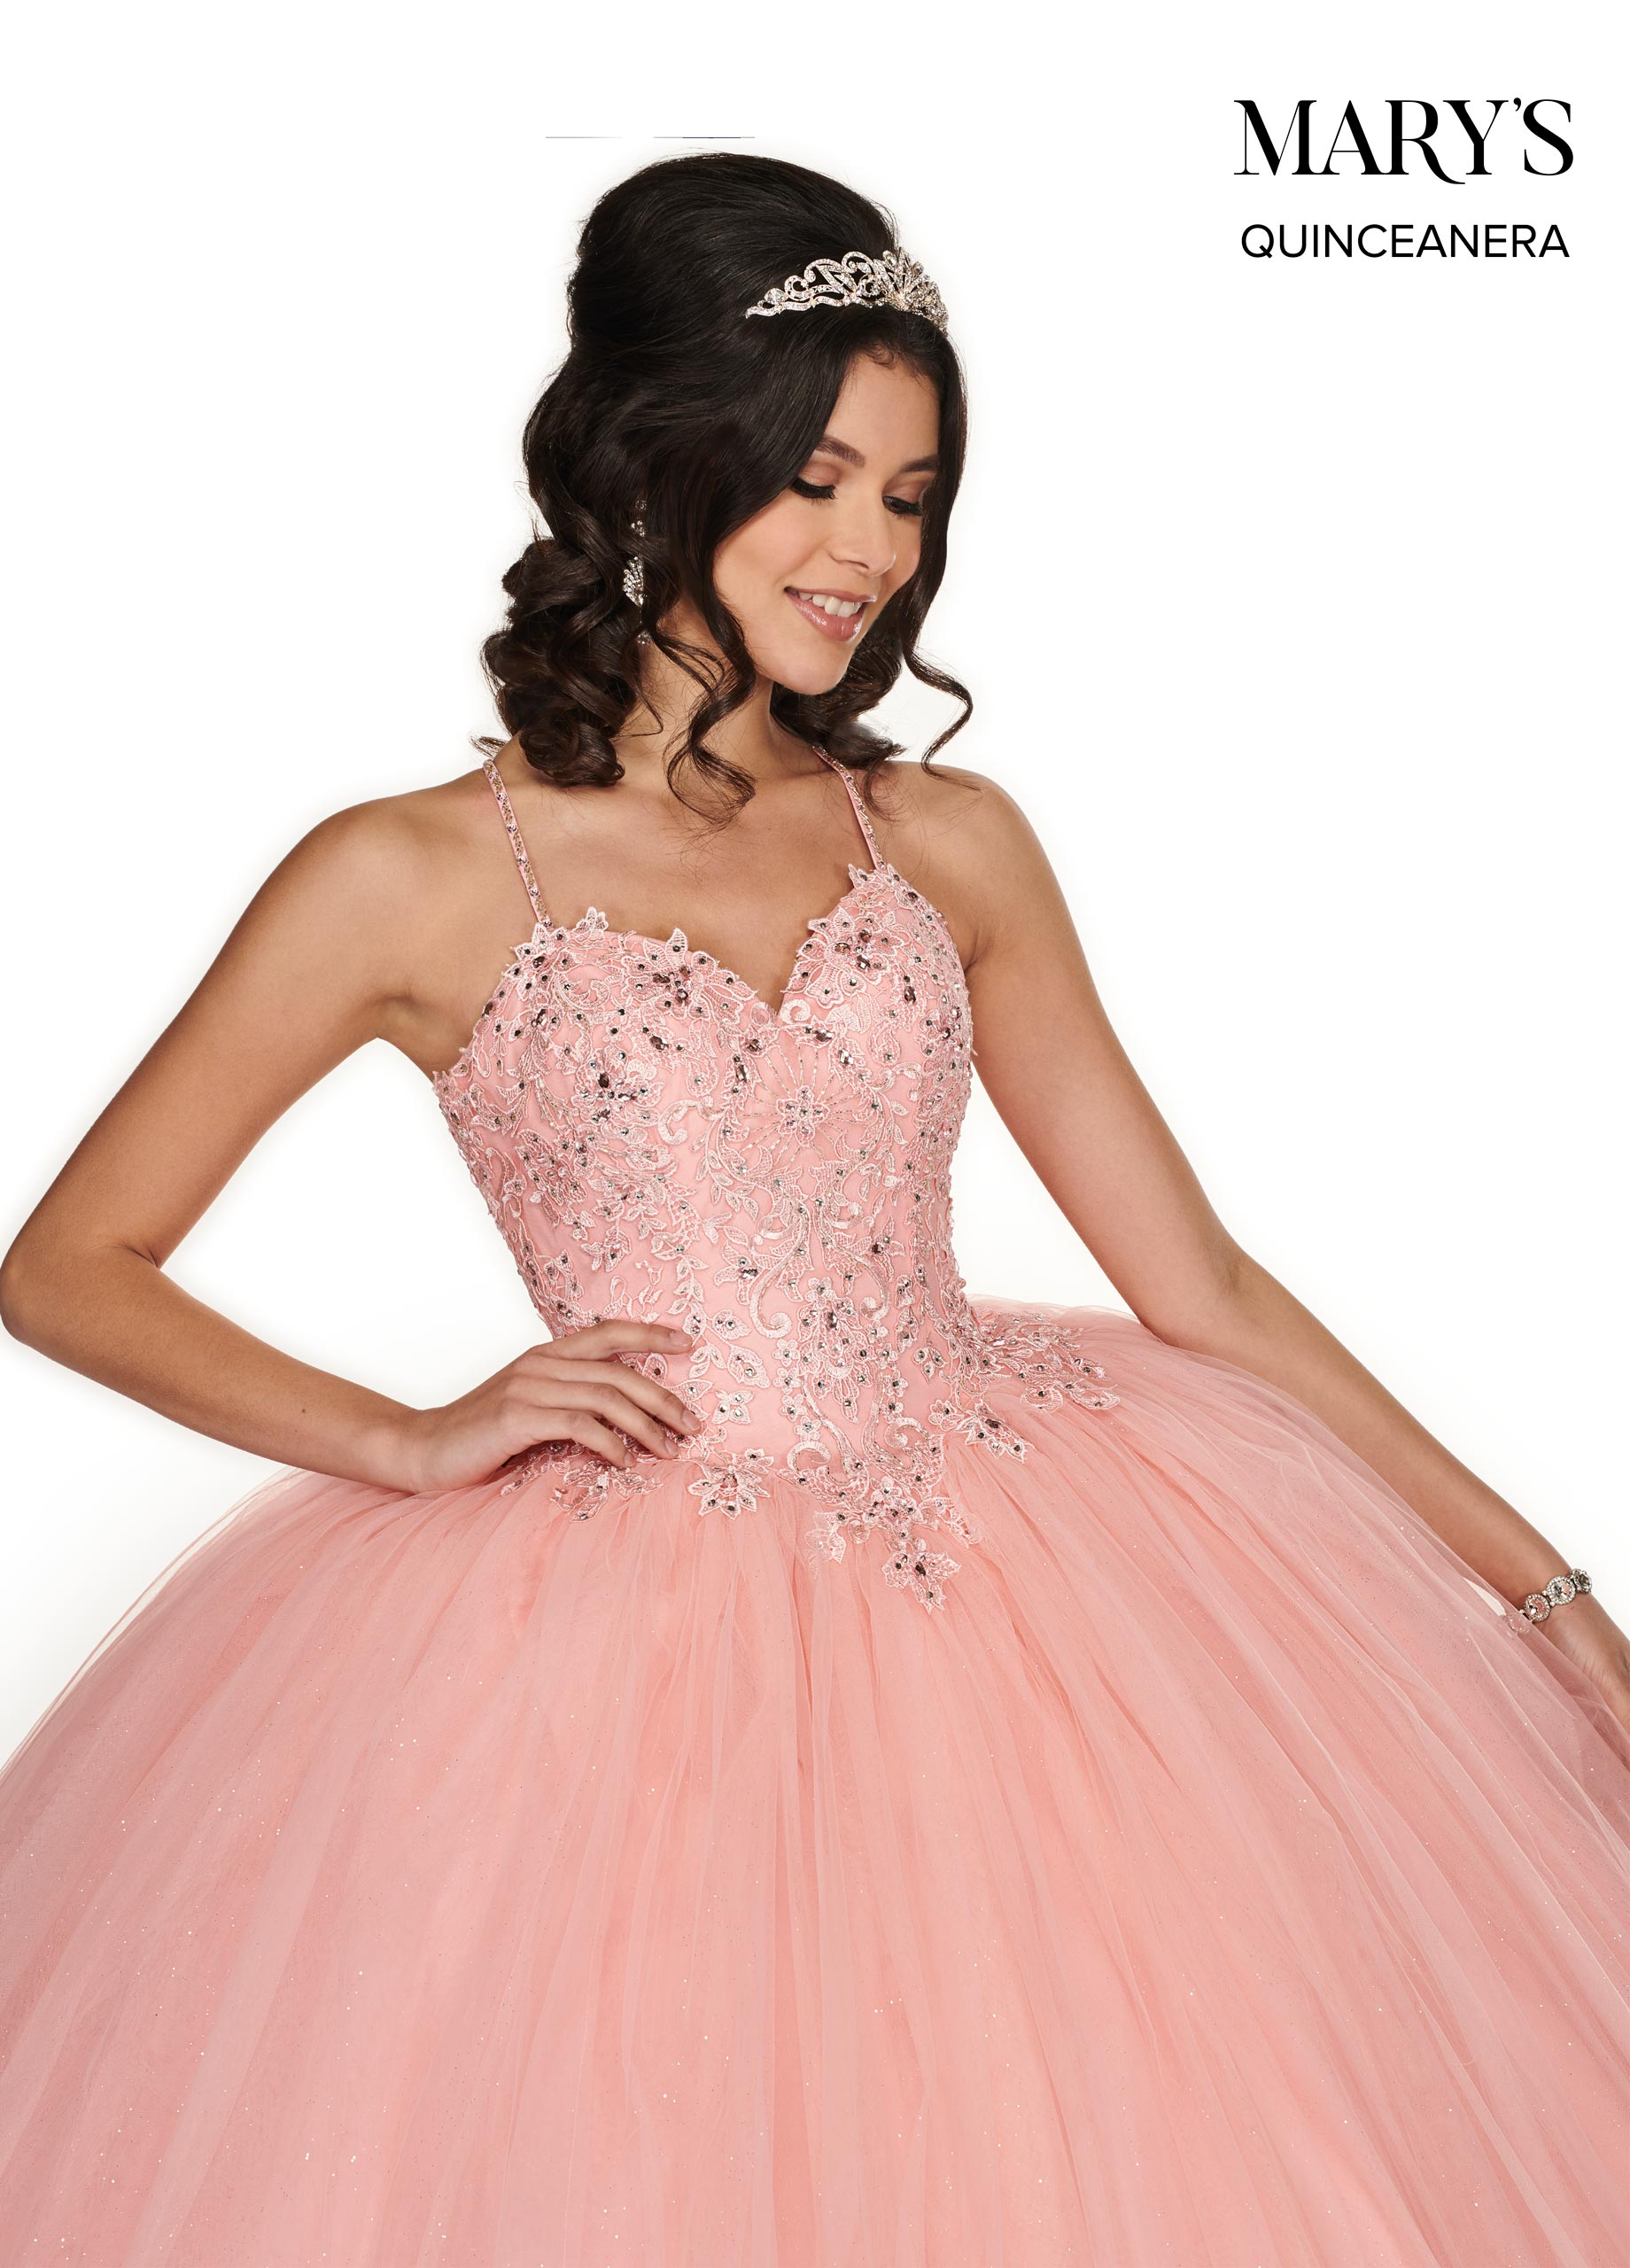 Marys Quinceanera Dresses | Mary's Quinceanera | Style - MQ1052